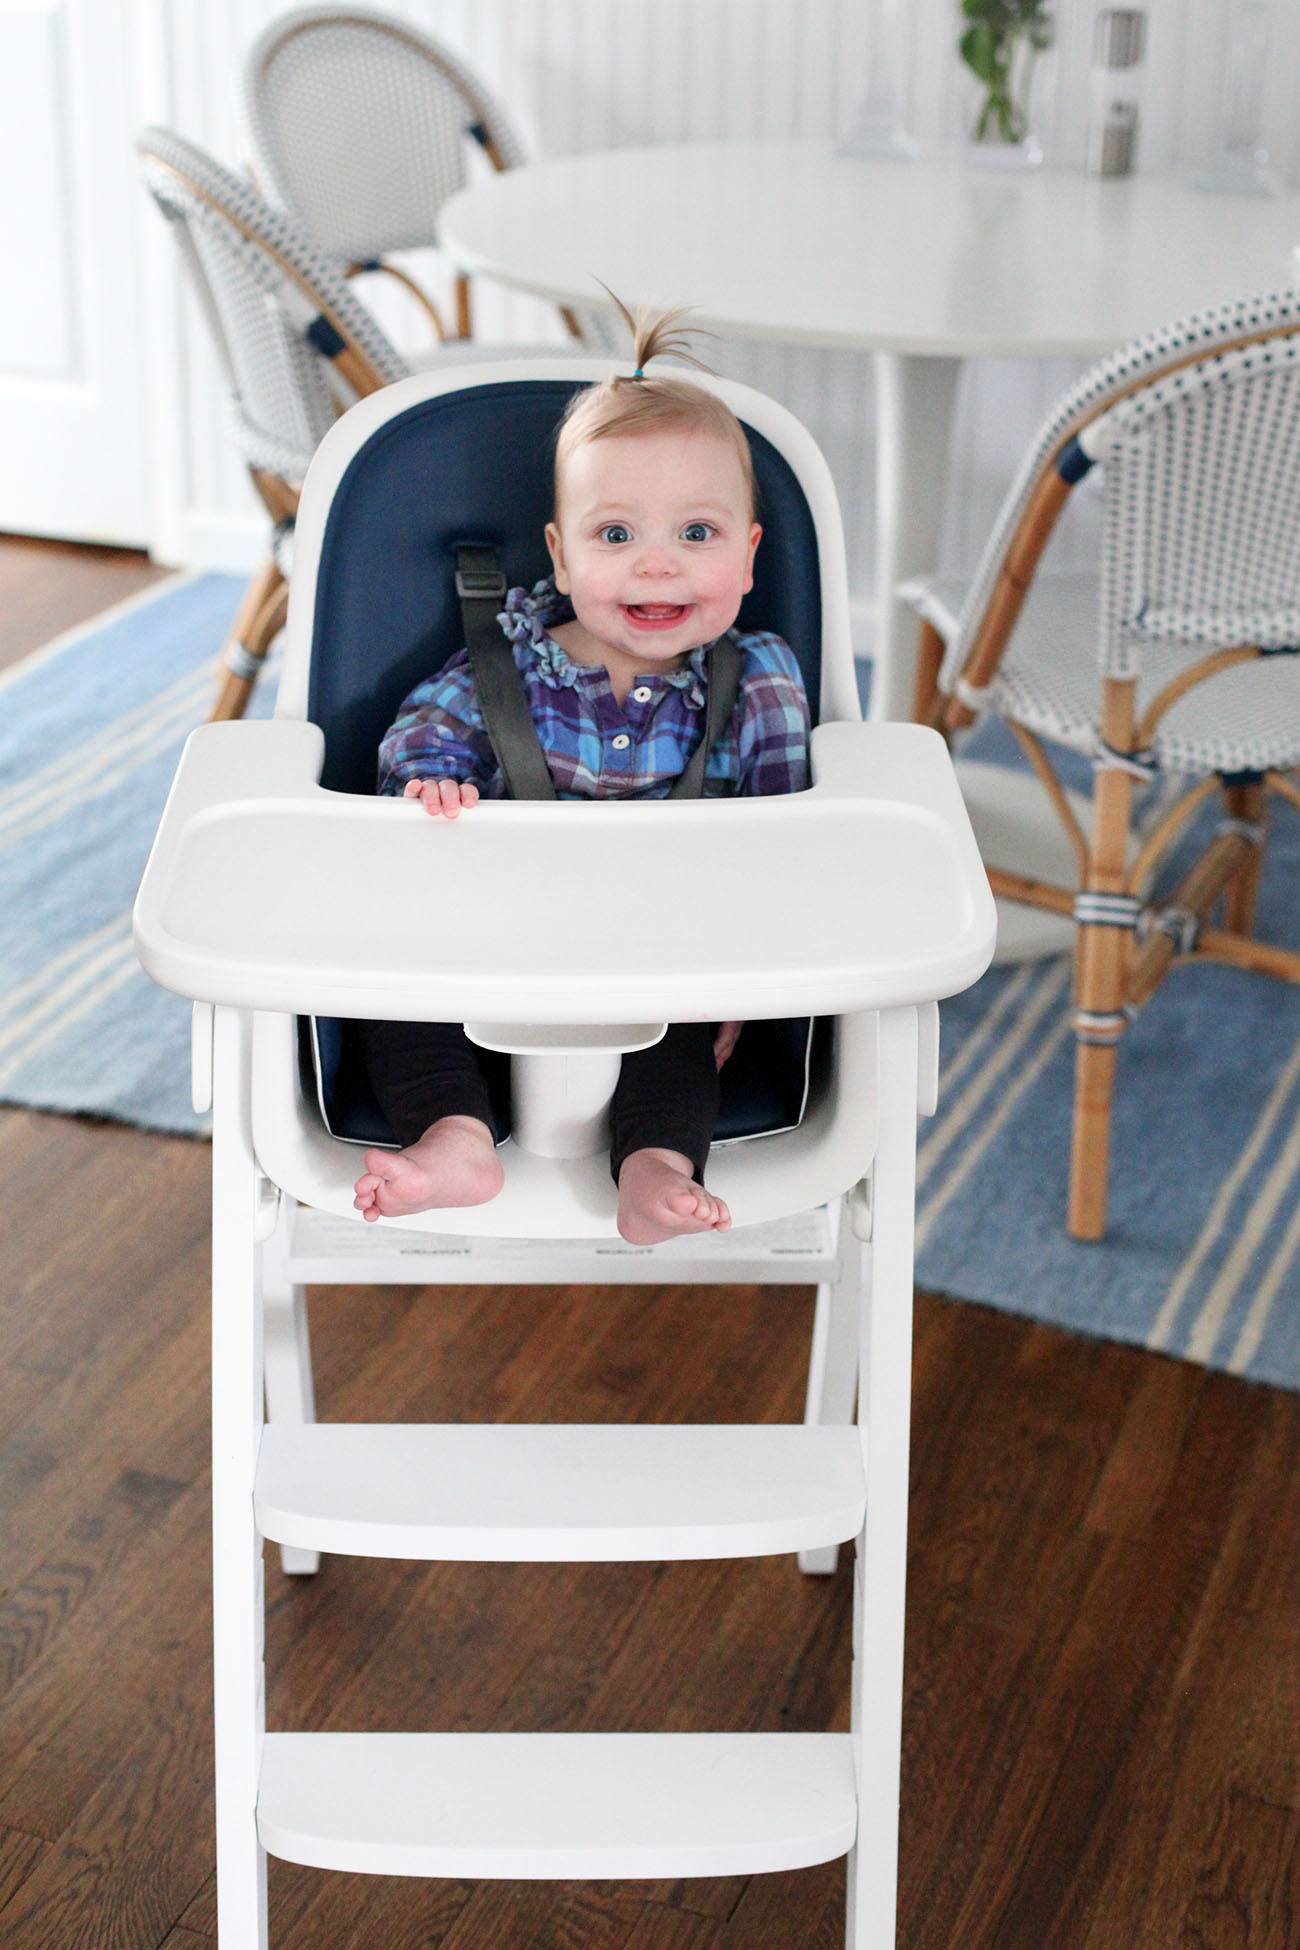 oxo tot high chair recall cover and sash hire aberdeen sprout review